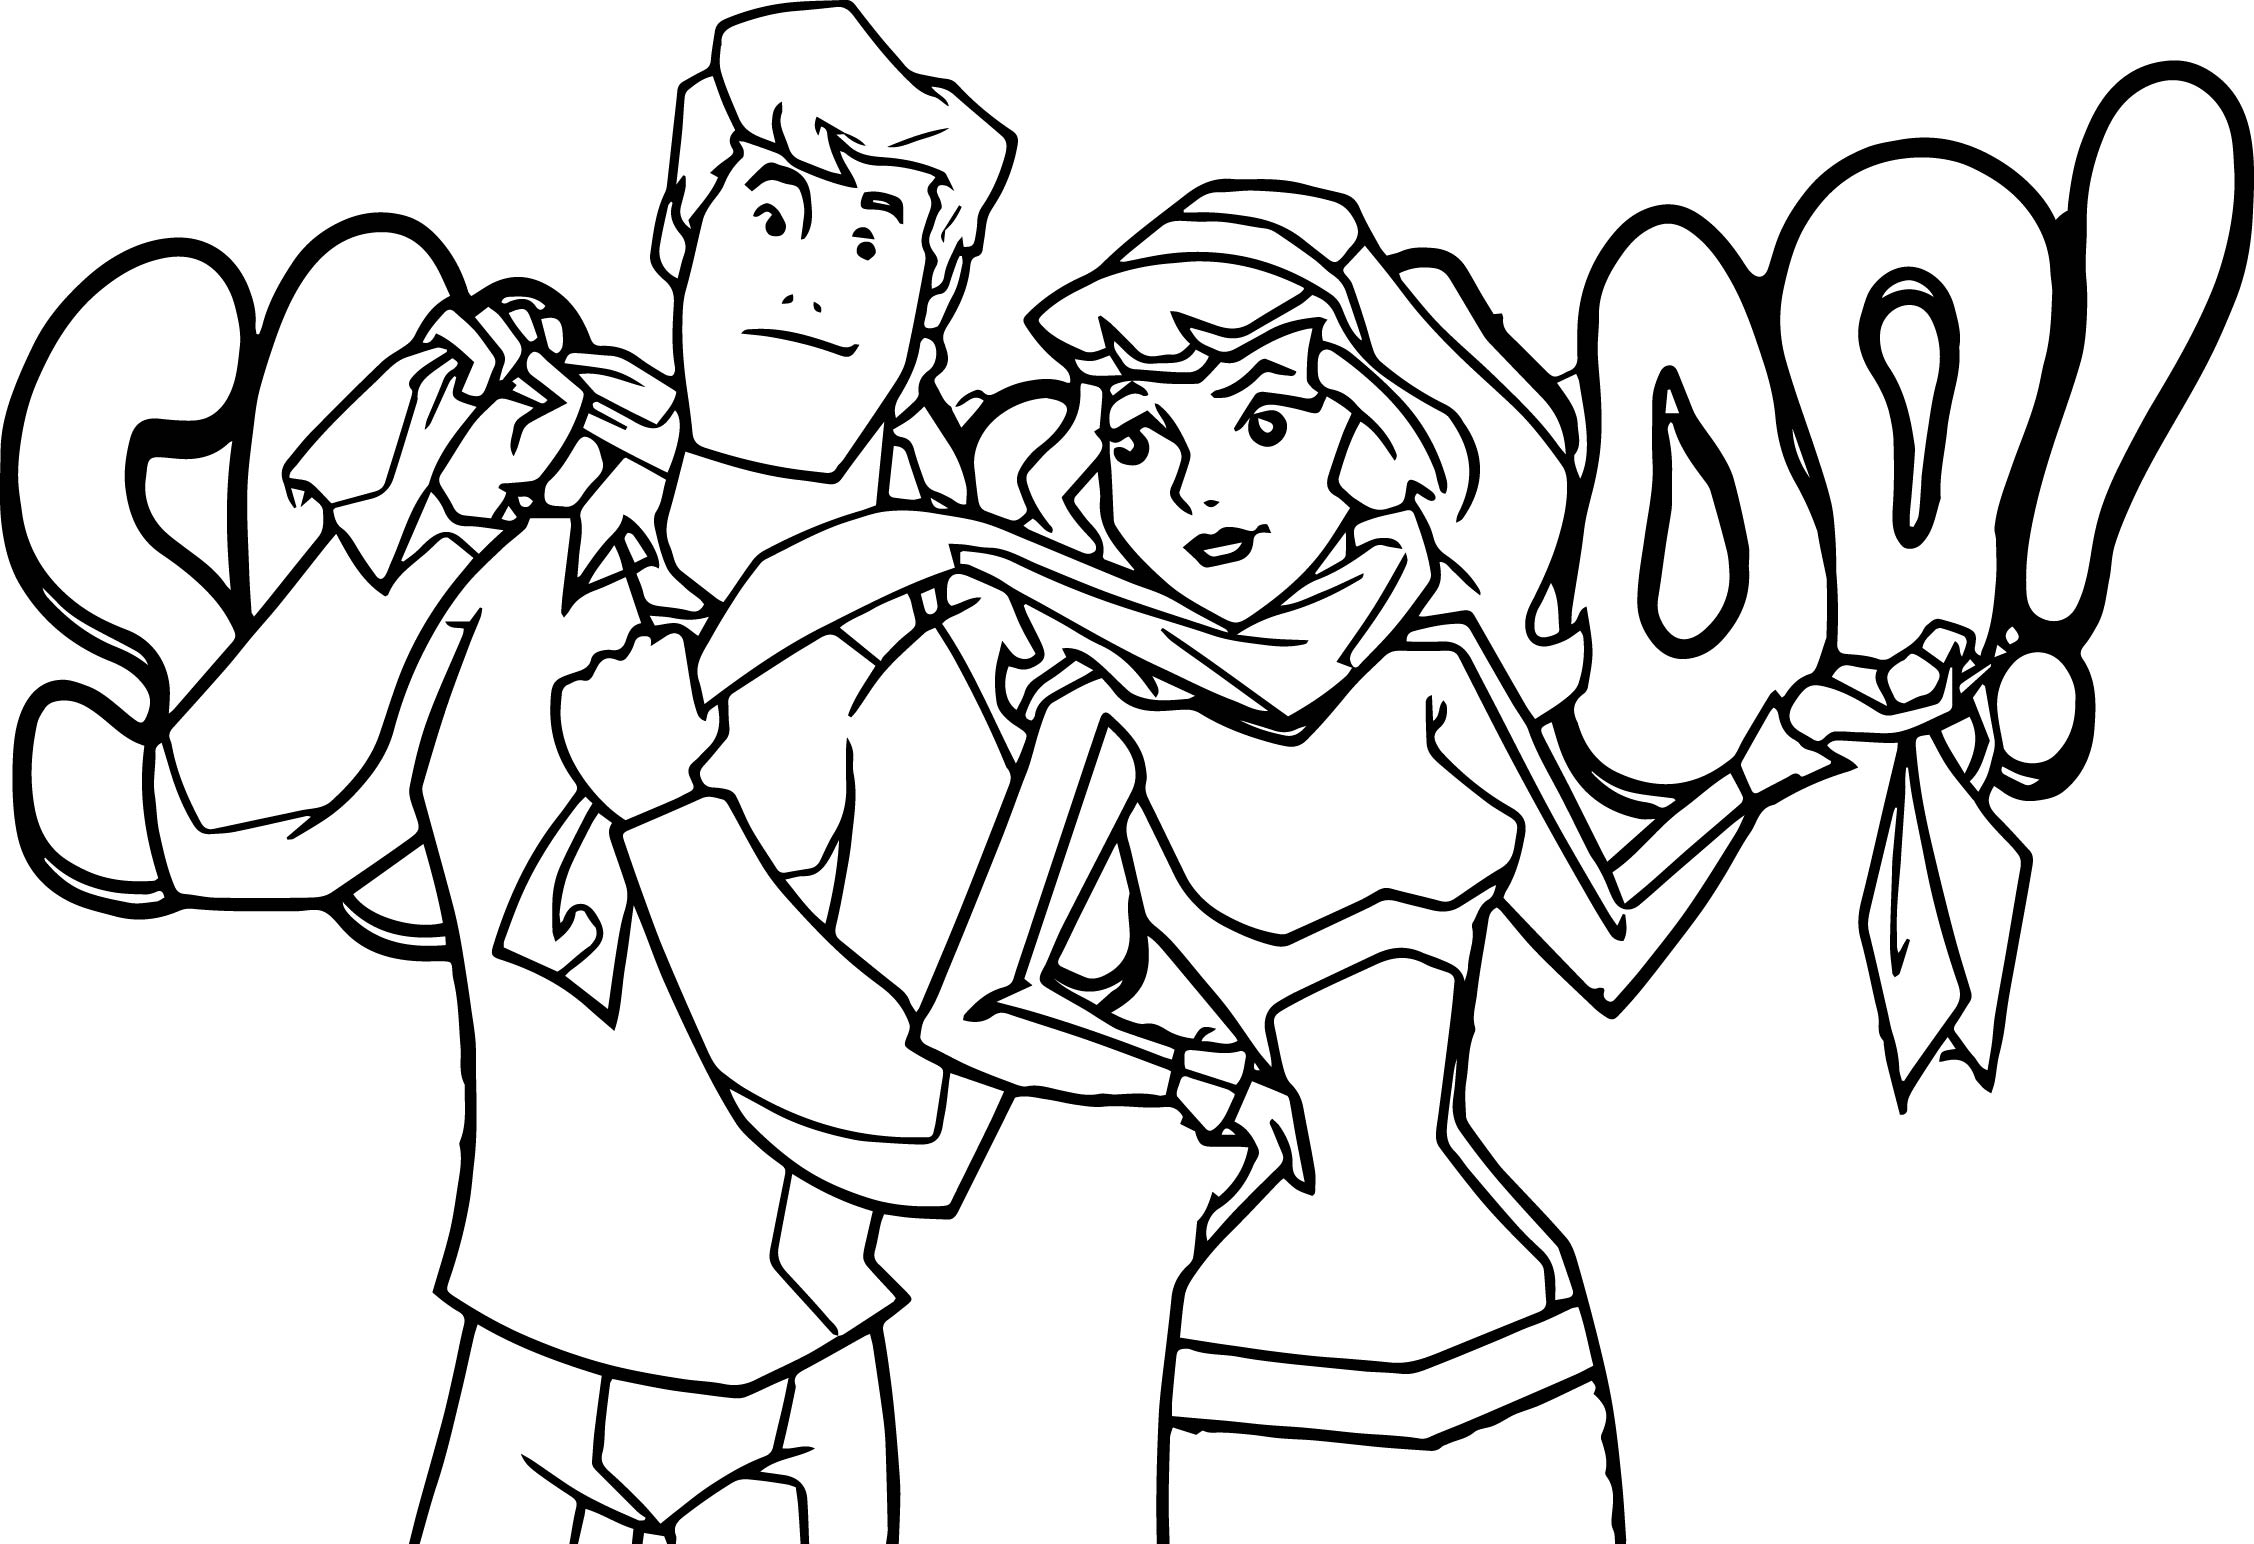 Daphne Scooby Doo Coloring Pages At Getdrawings